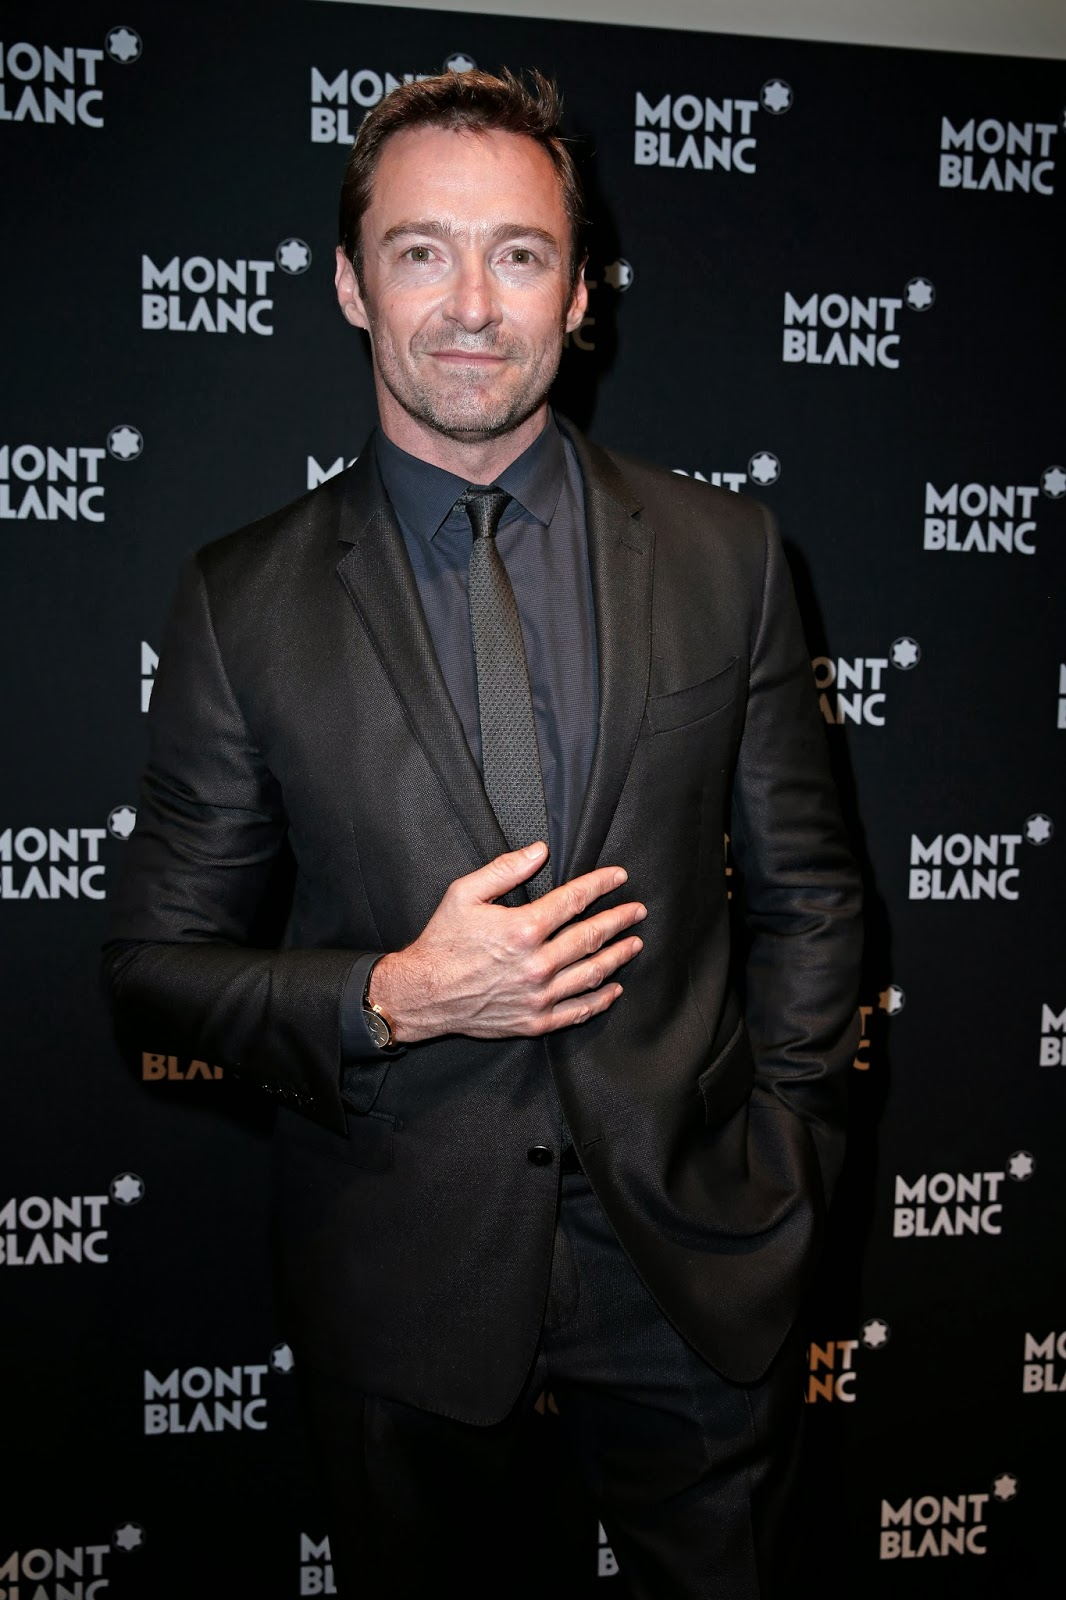 Hugh Jackman announced as 2014 ambassador for Montblanc